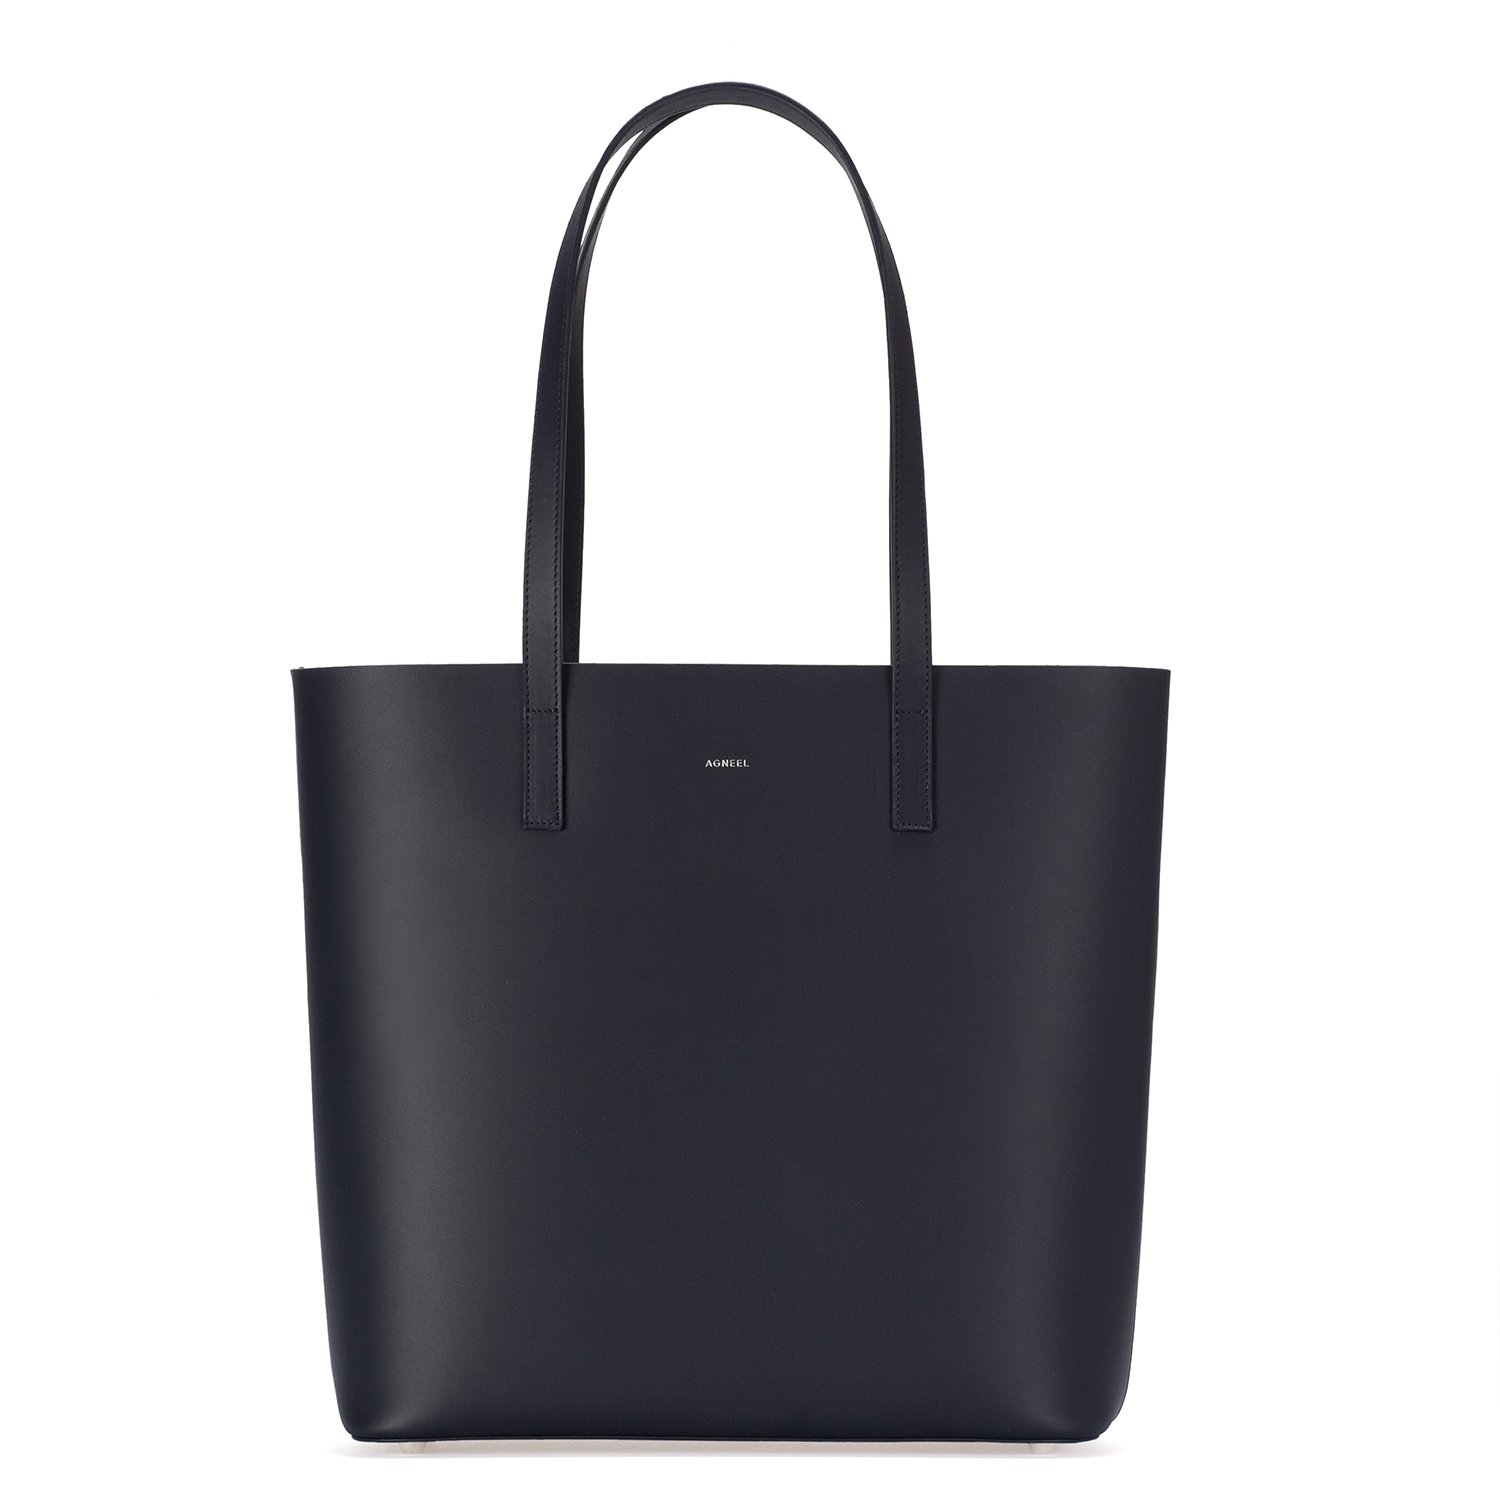 AKRA SHOPPER IN BABY-CALFSKIN